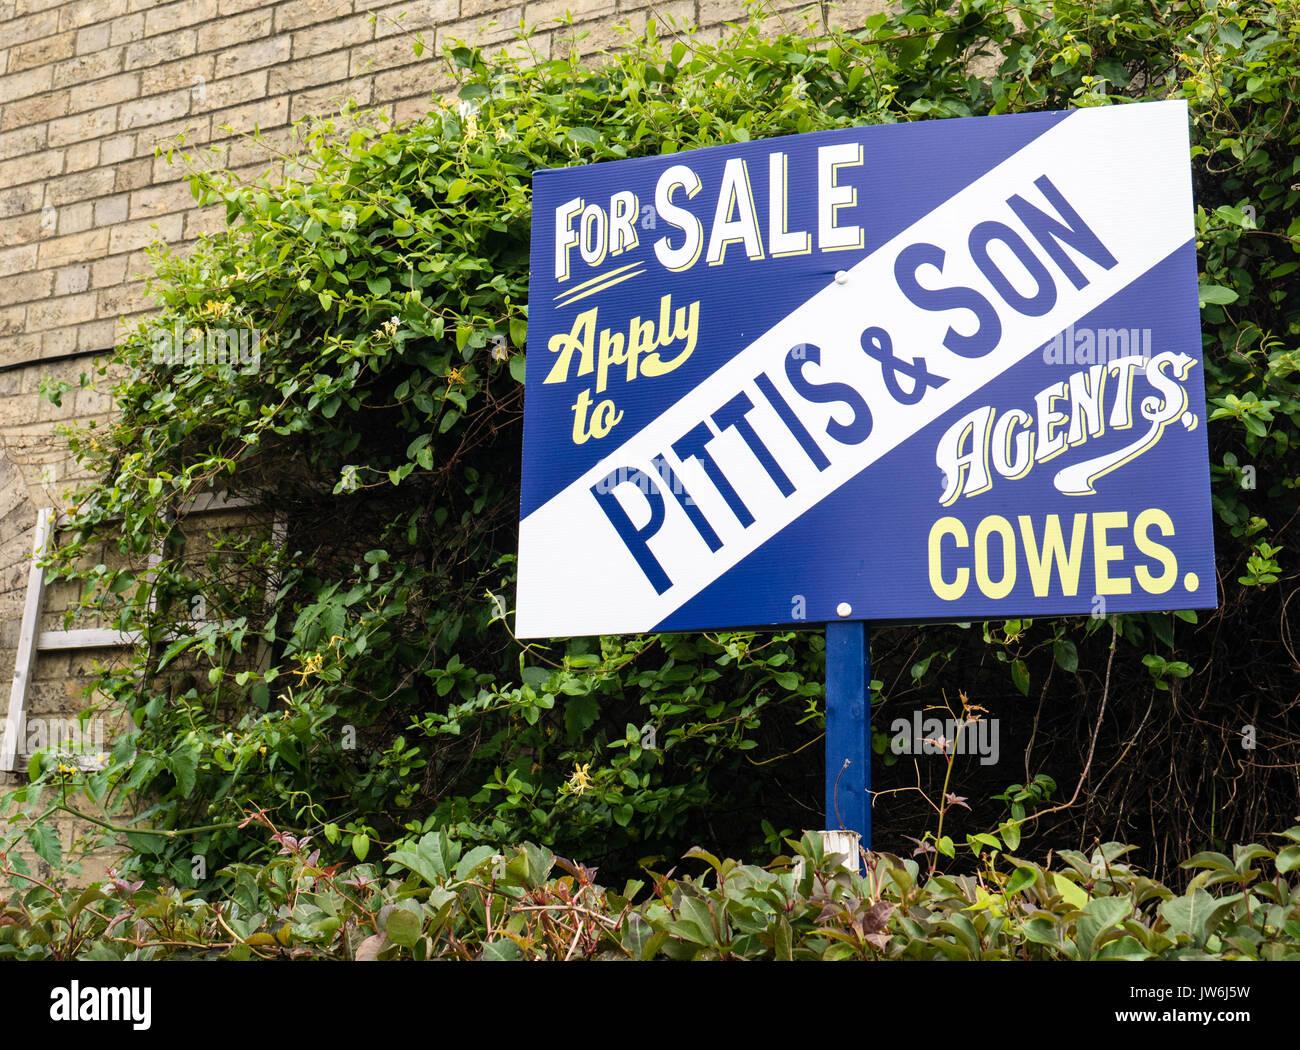 Traditional Estate Agents Sign, Cowes, Isle of Wight, England - Stock Image